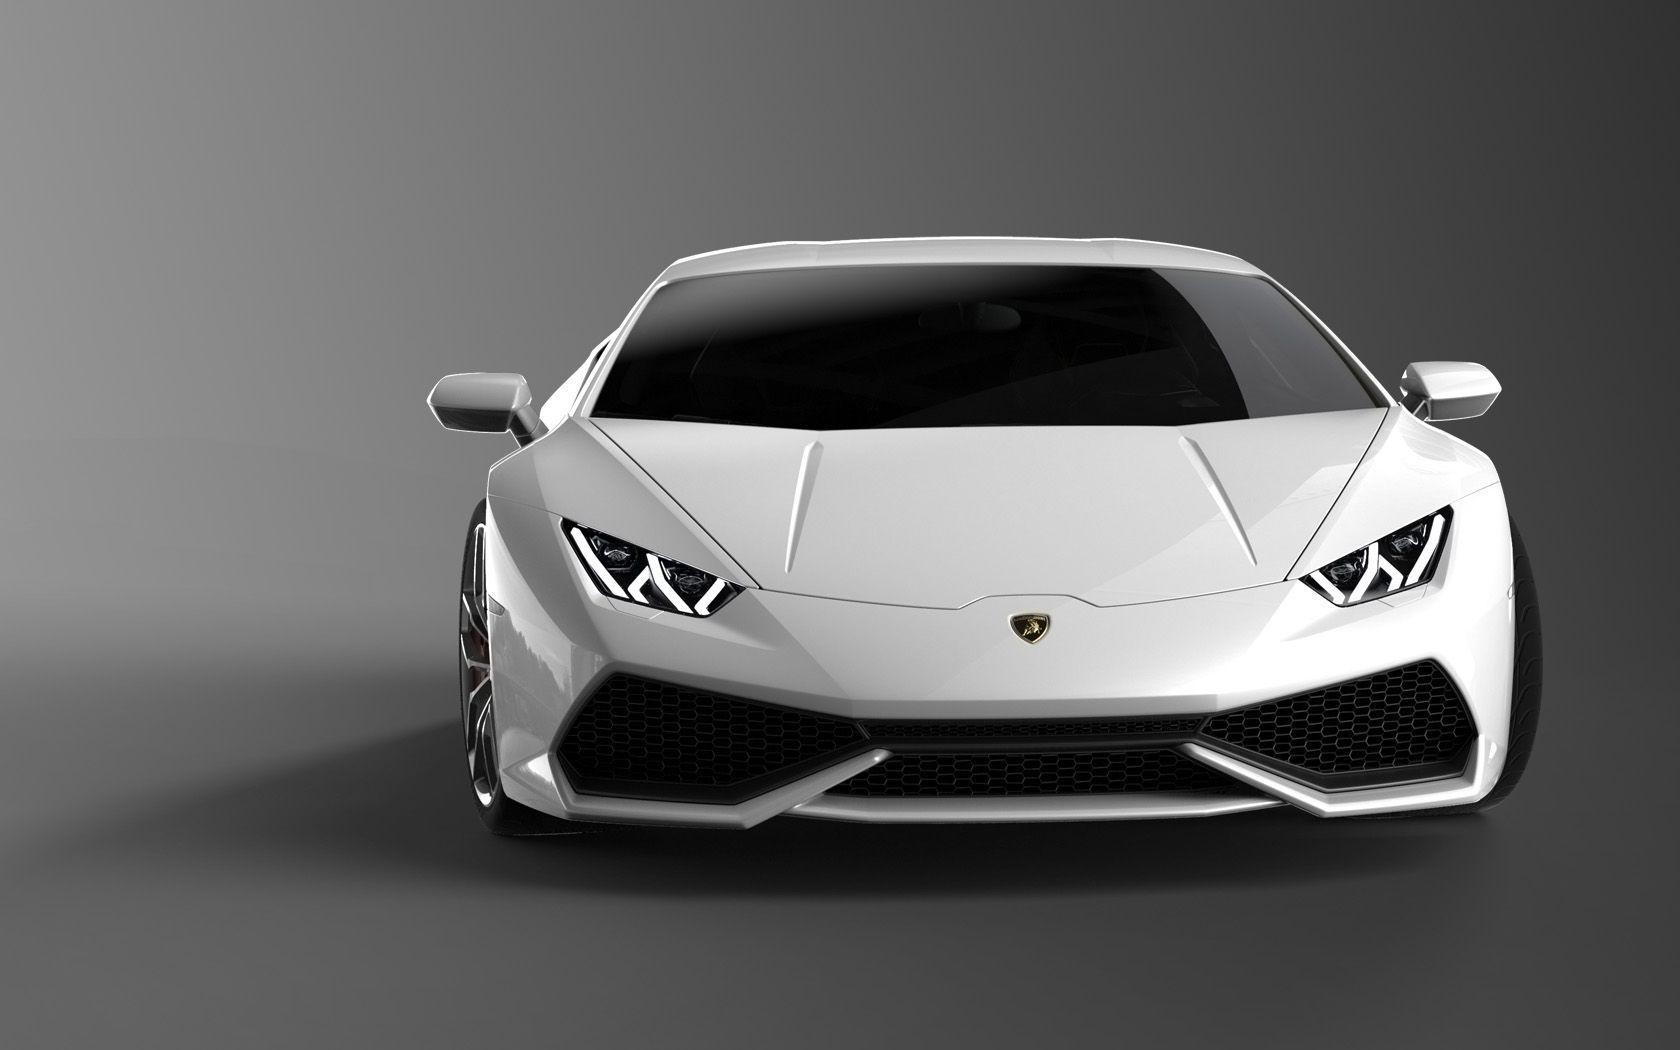 Black And White Lamborghini Wallpapers Wallpaper Cave